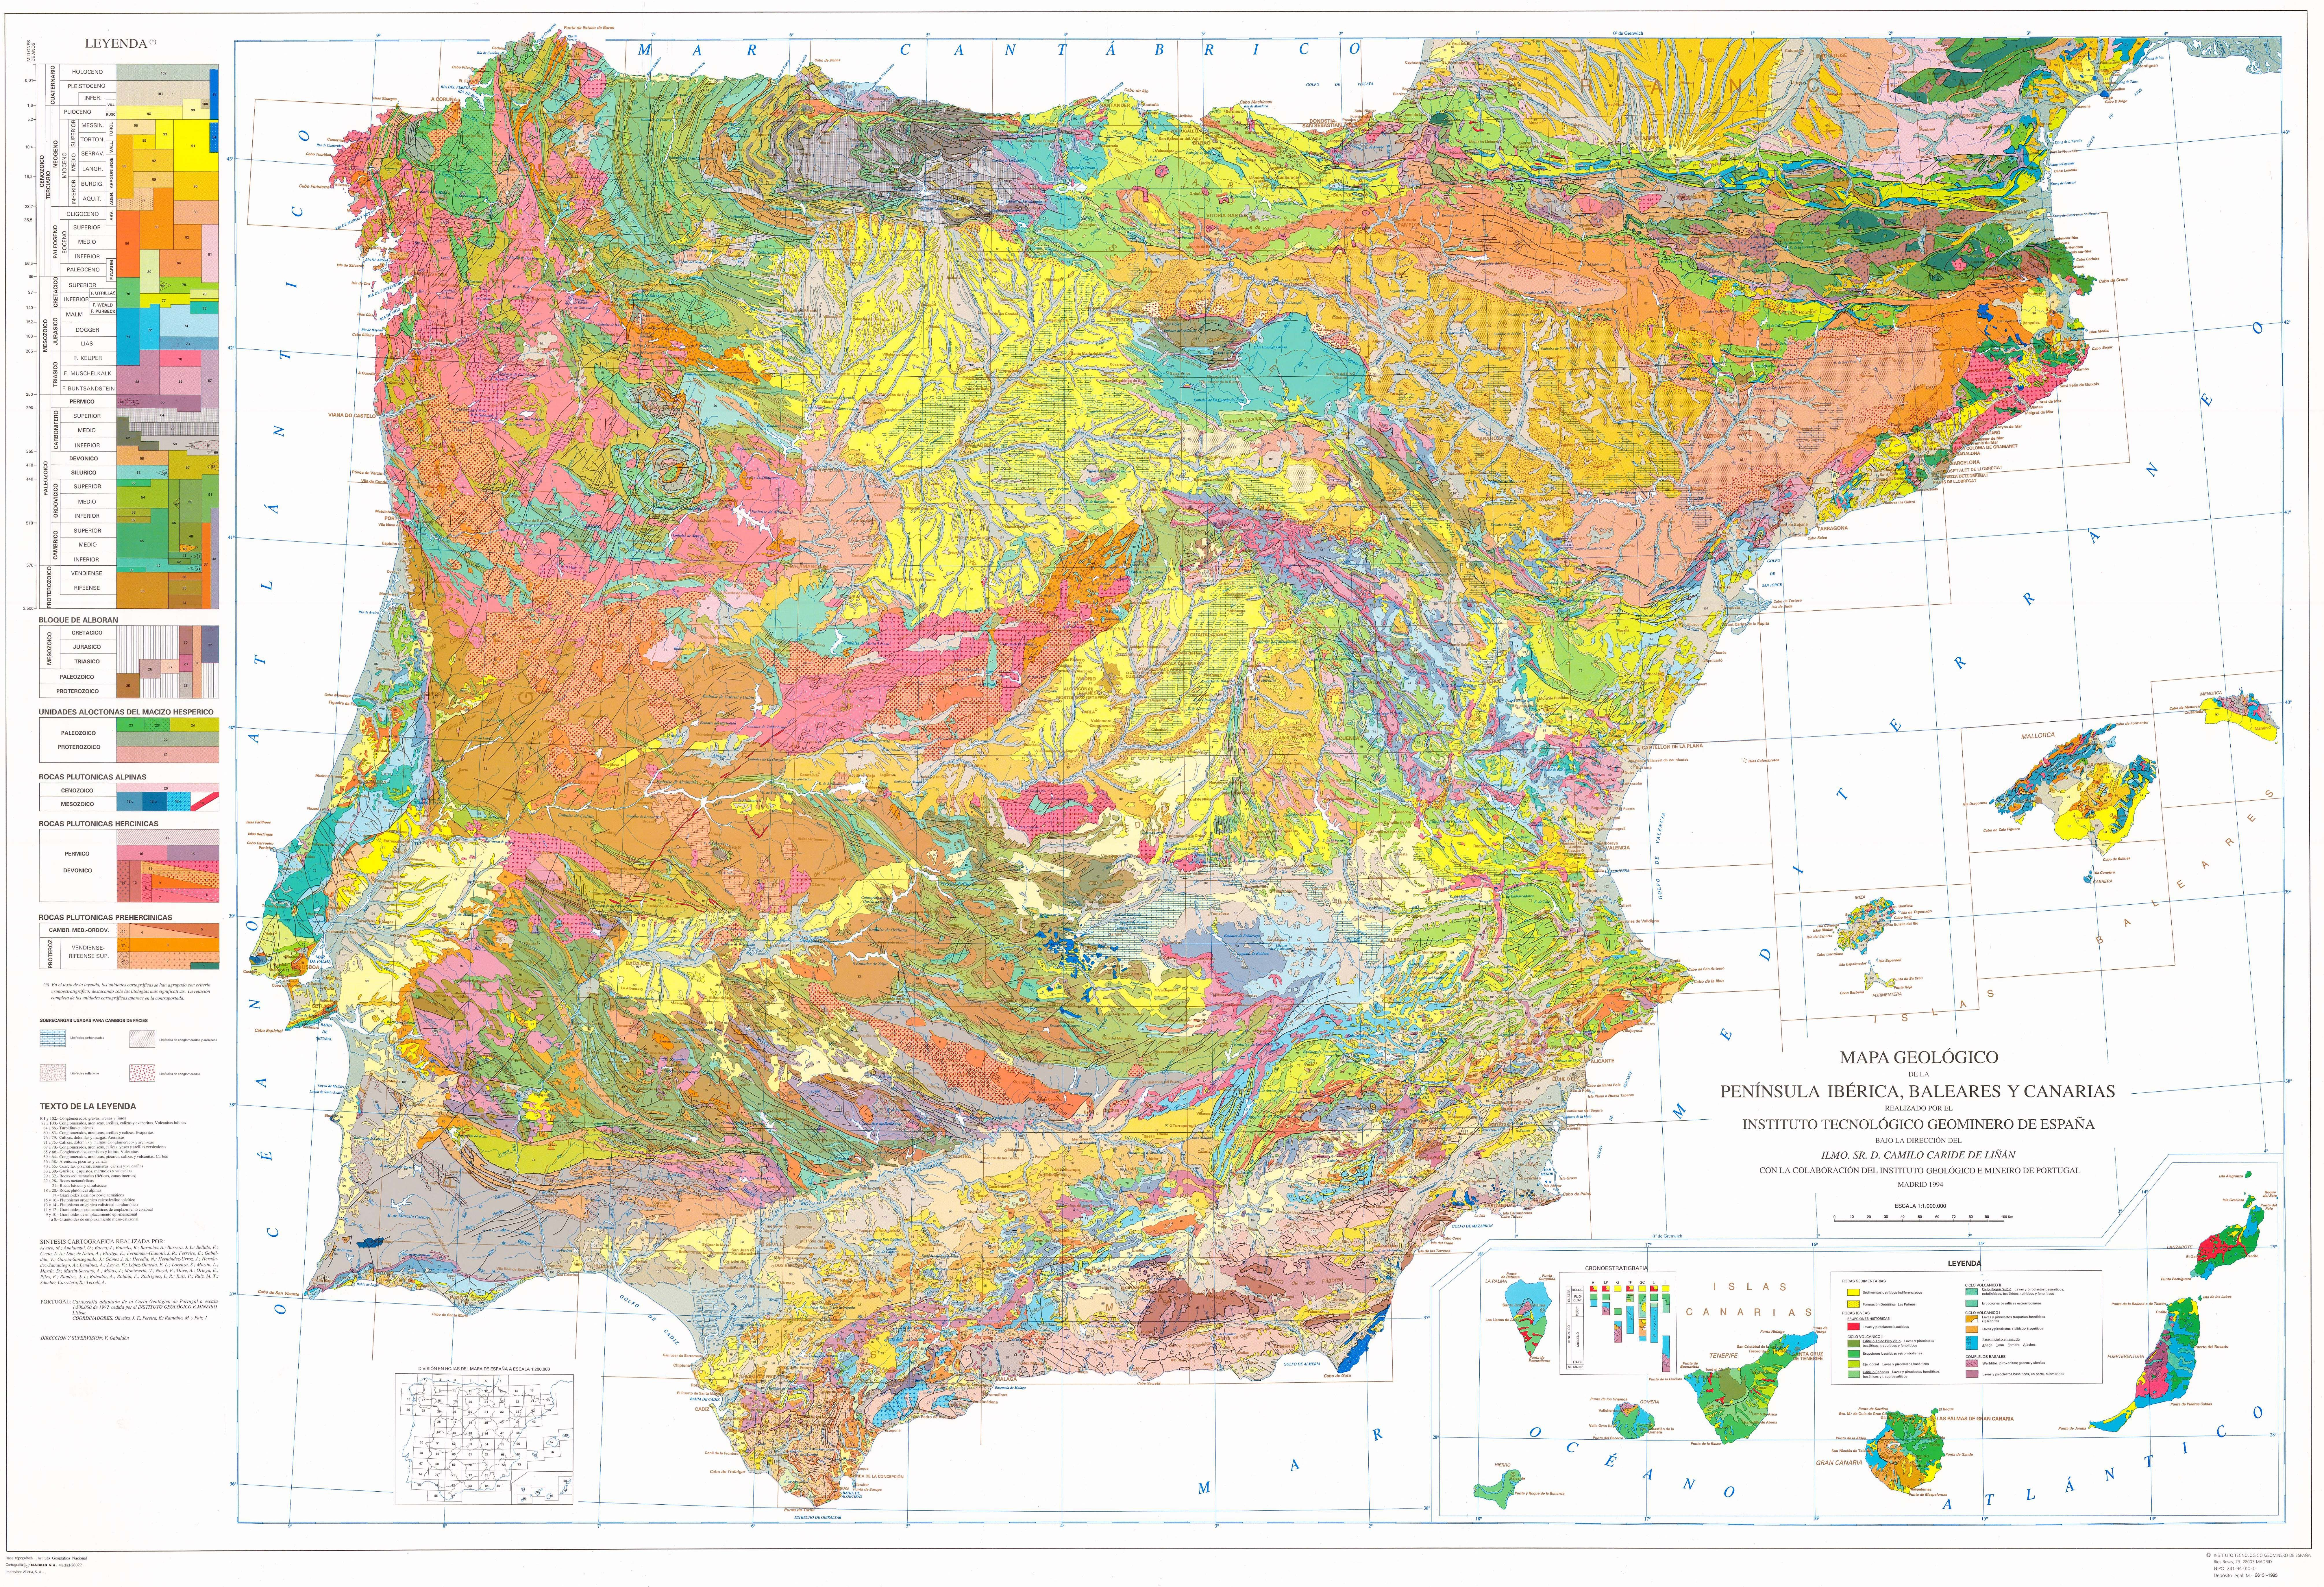 Geological Map Of Spain.Geological Map Of Spain 1994 Things Worth Learning Map Of Spain